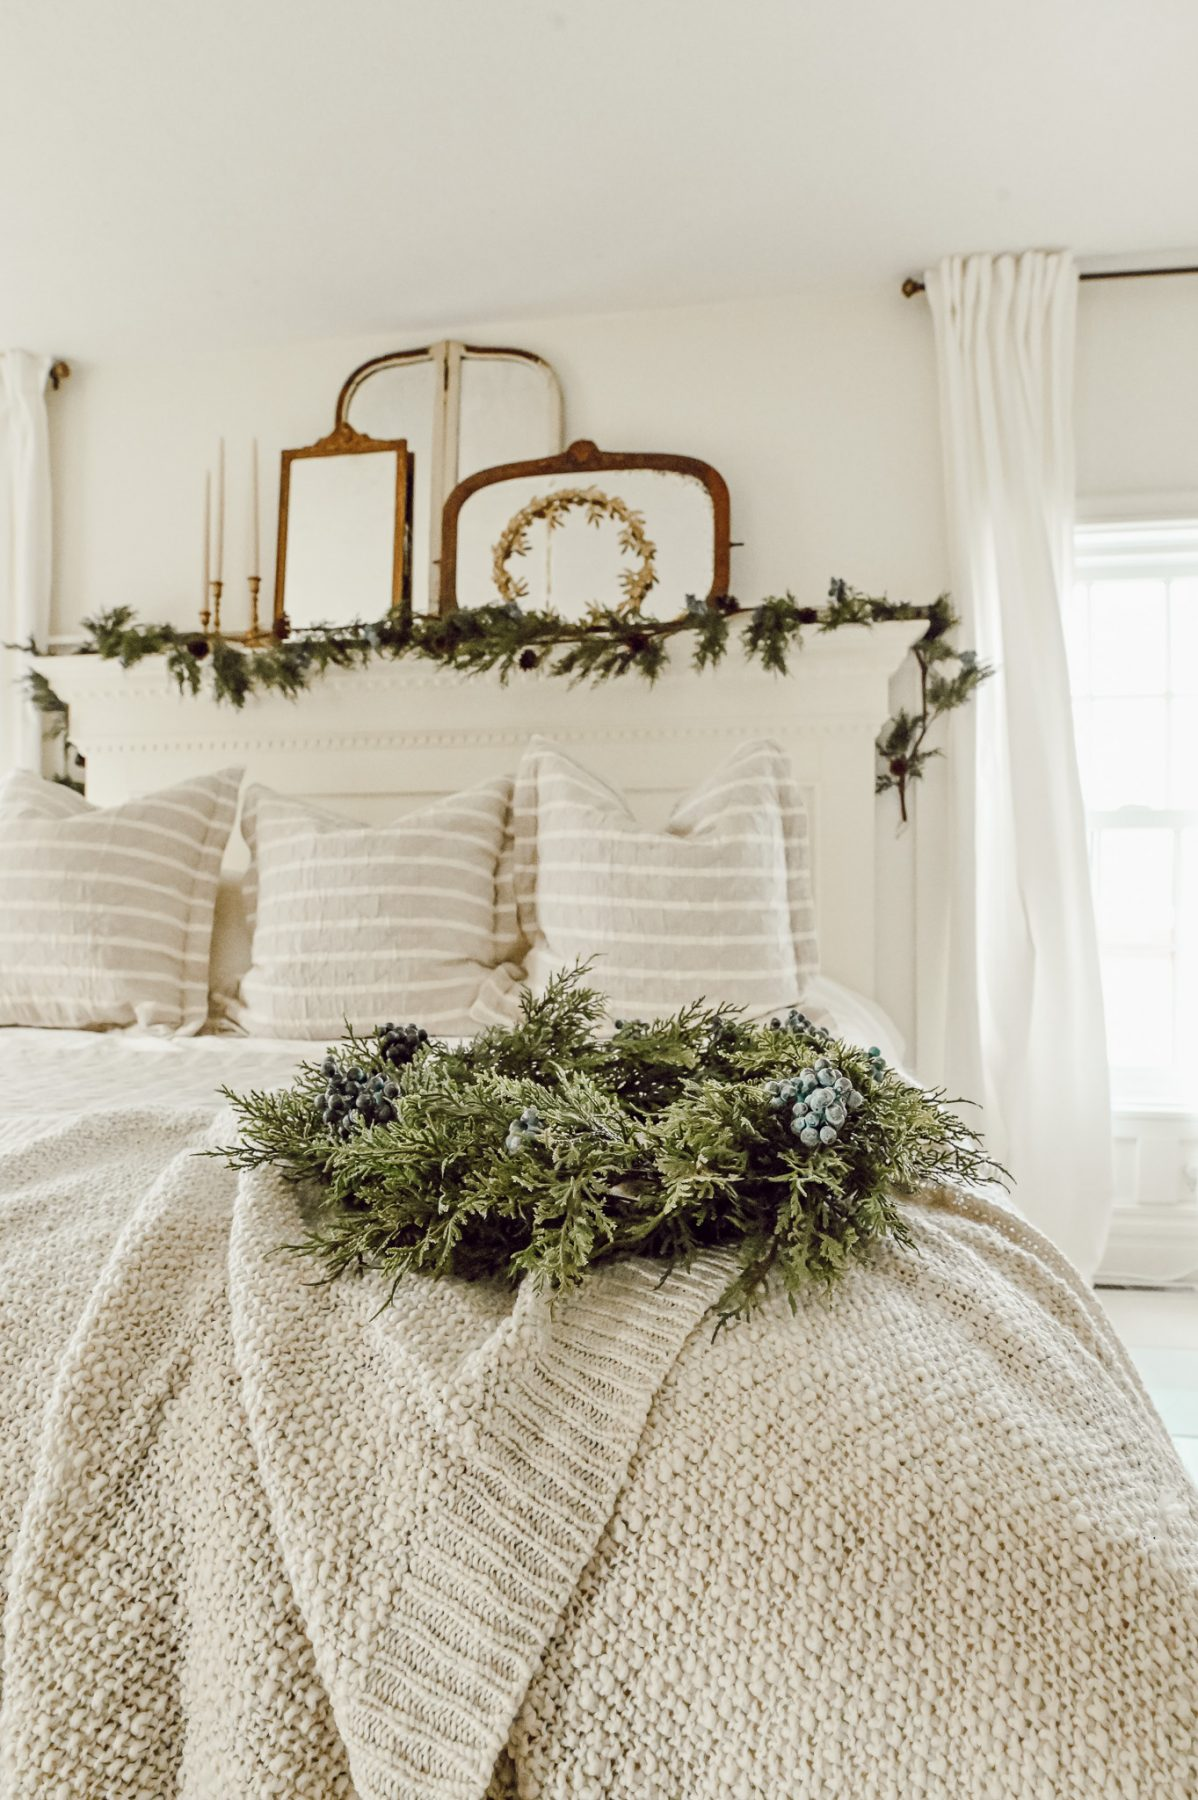 Cozy Christmas Bed